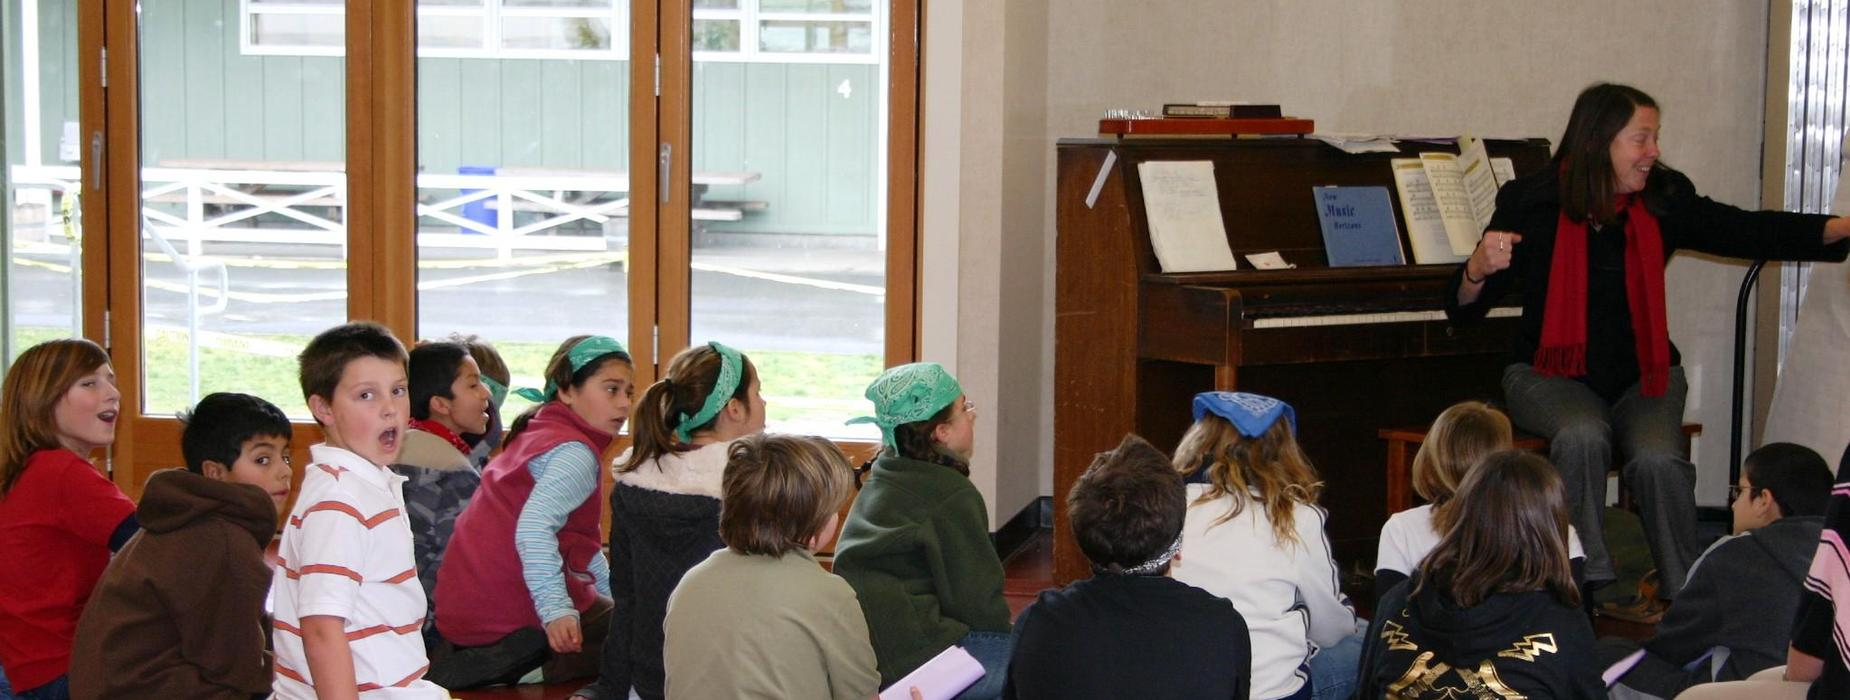 Music enrichment - West Side School